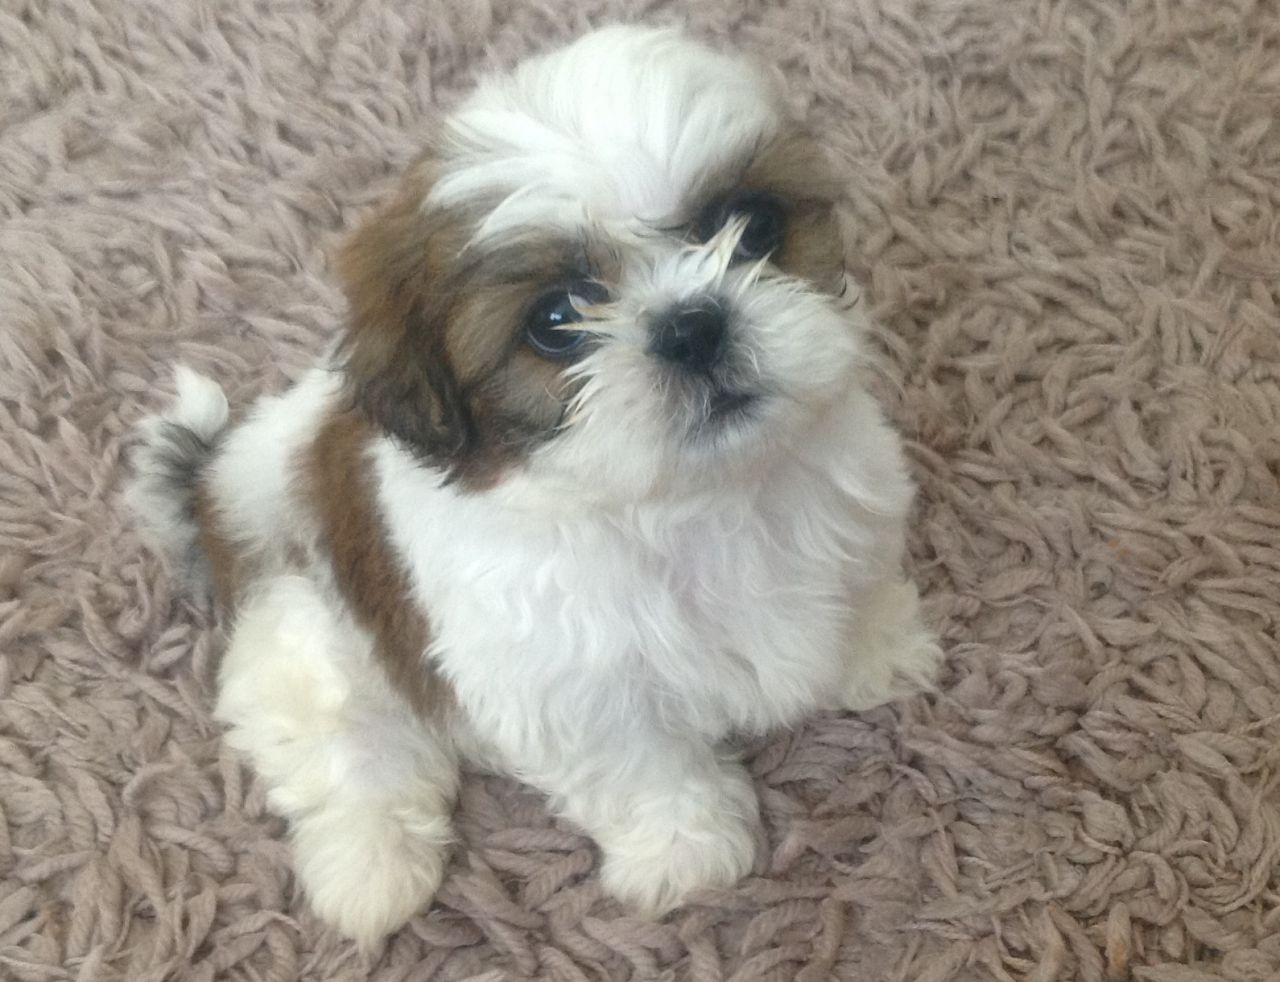 48 Very Cute Shih Tzu Puppy Pictures And Photos